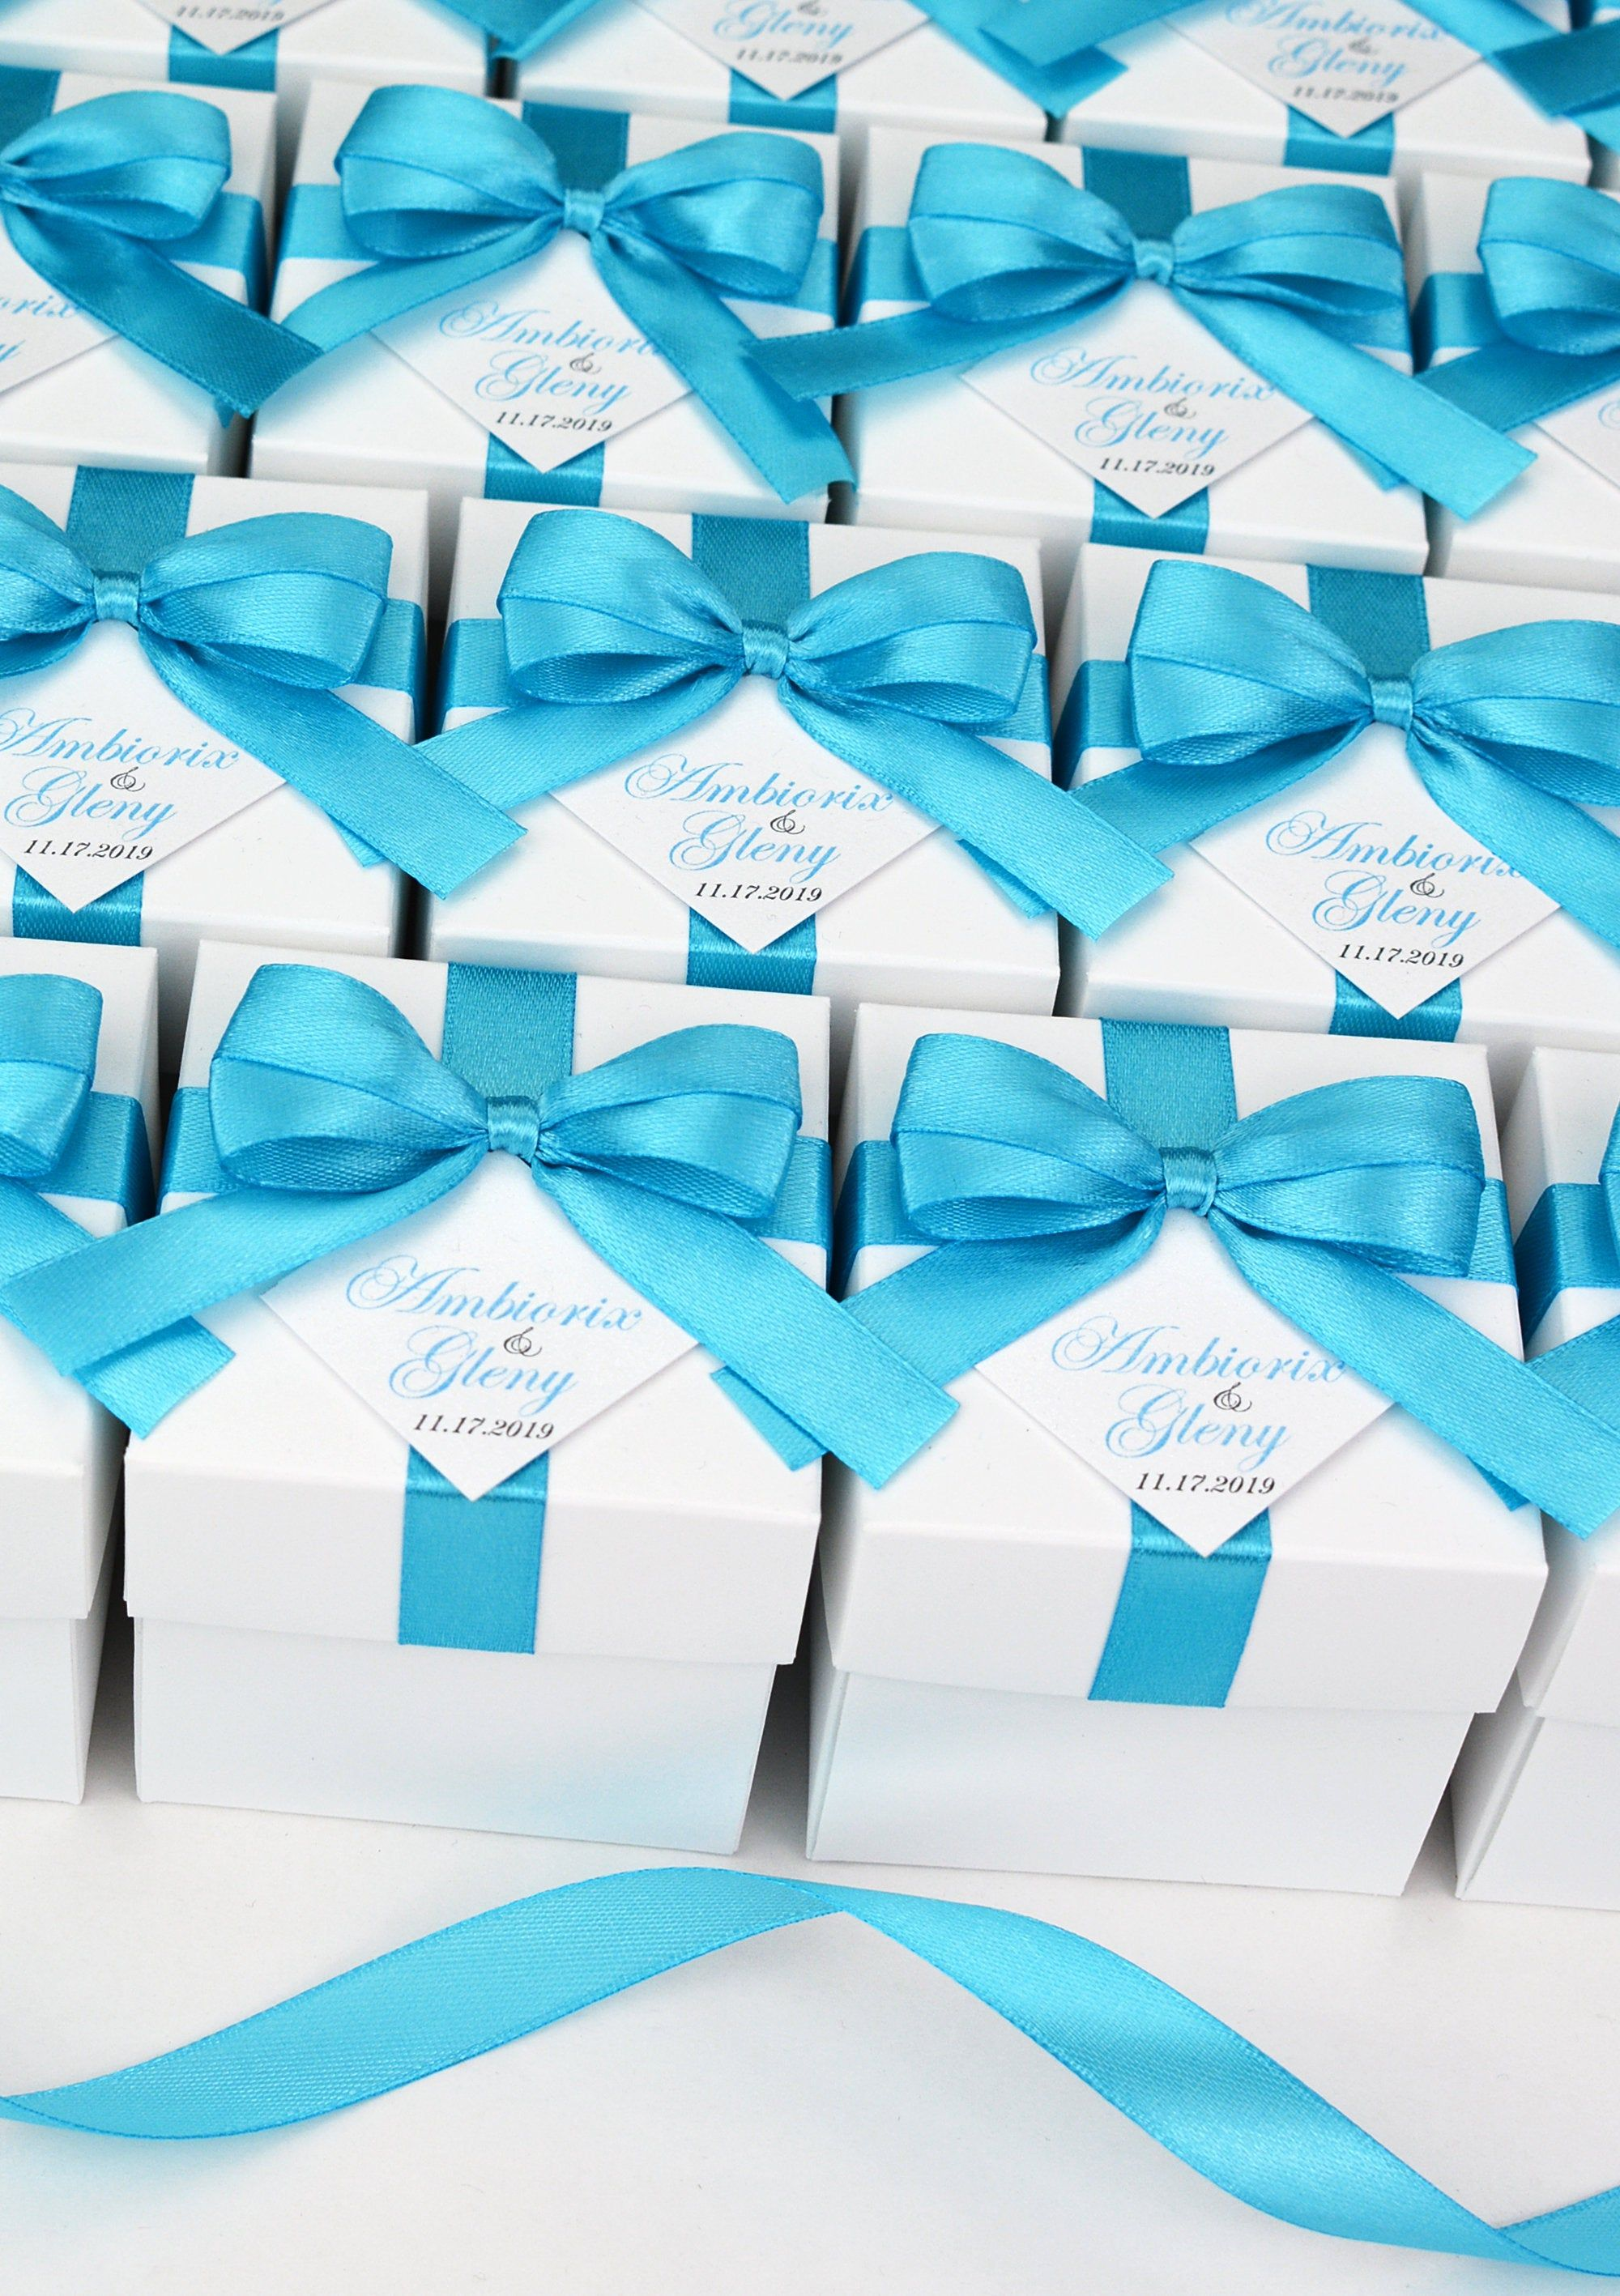 Wedding favor boxes with Light Blue satin ribbon bow and your names, Elegant Turquoise Personalized Wedding Bonbonniere Candy box for guests #personalizedweddingfavors